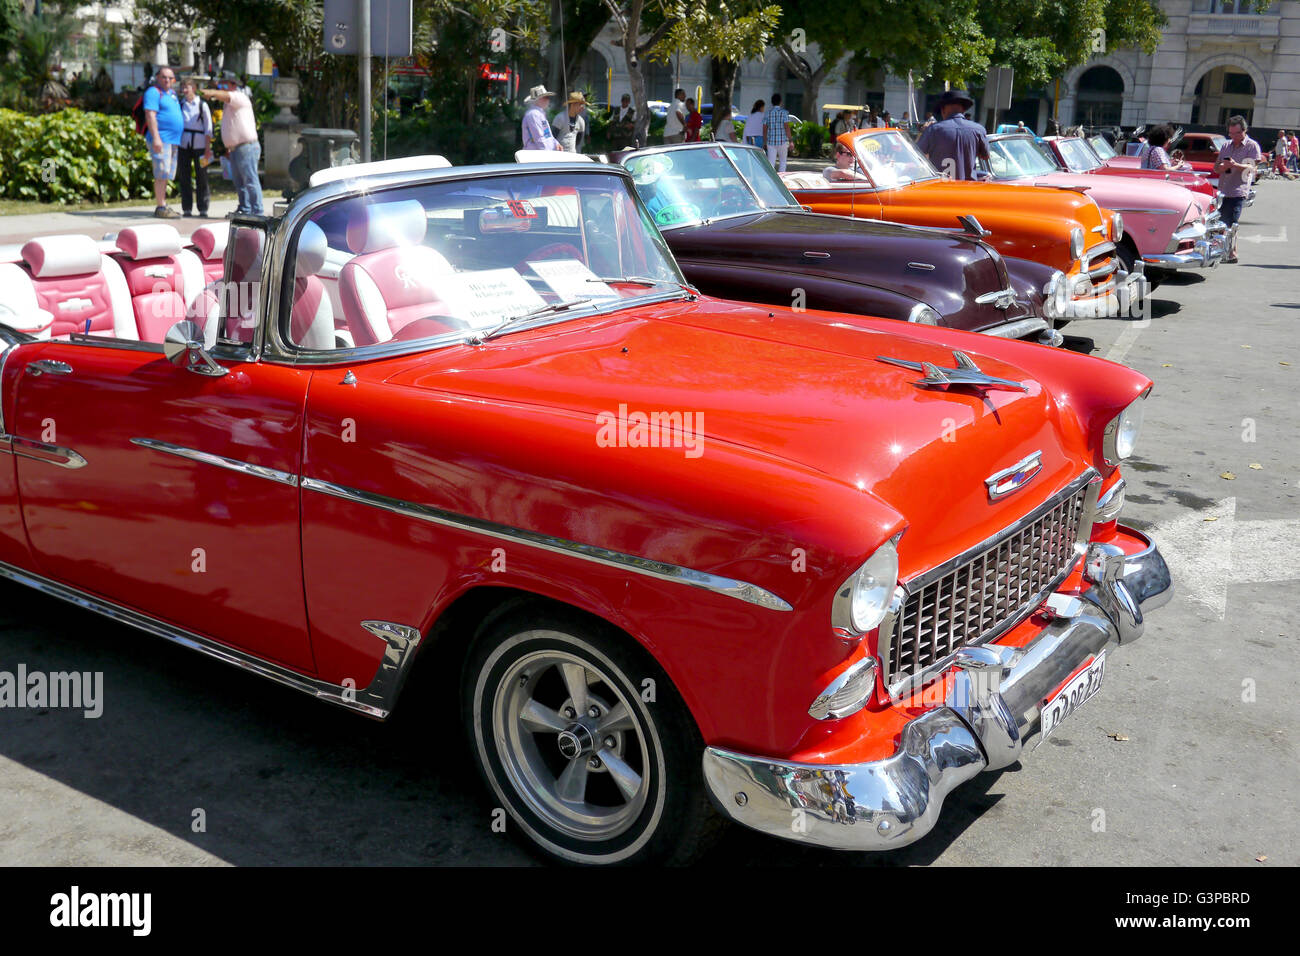 row of classic american cars in havana, cuba - Stock Image